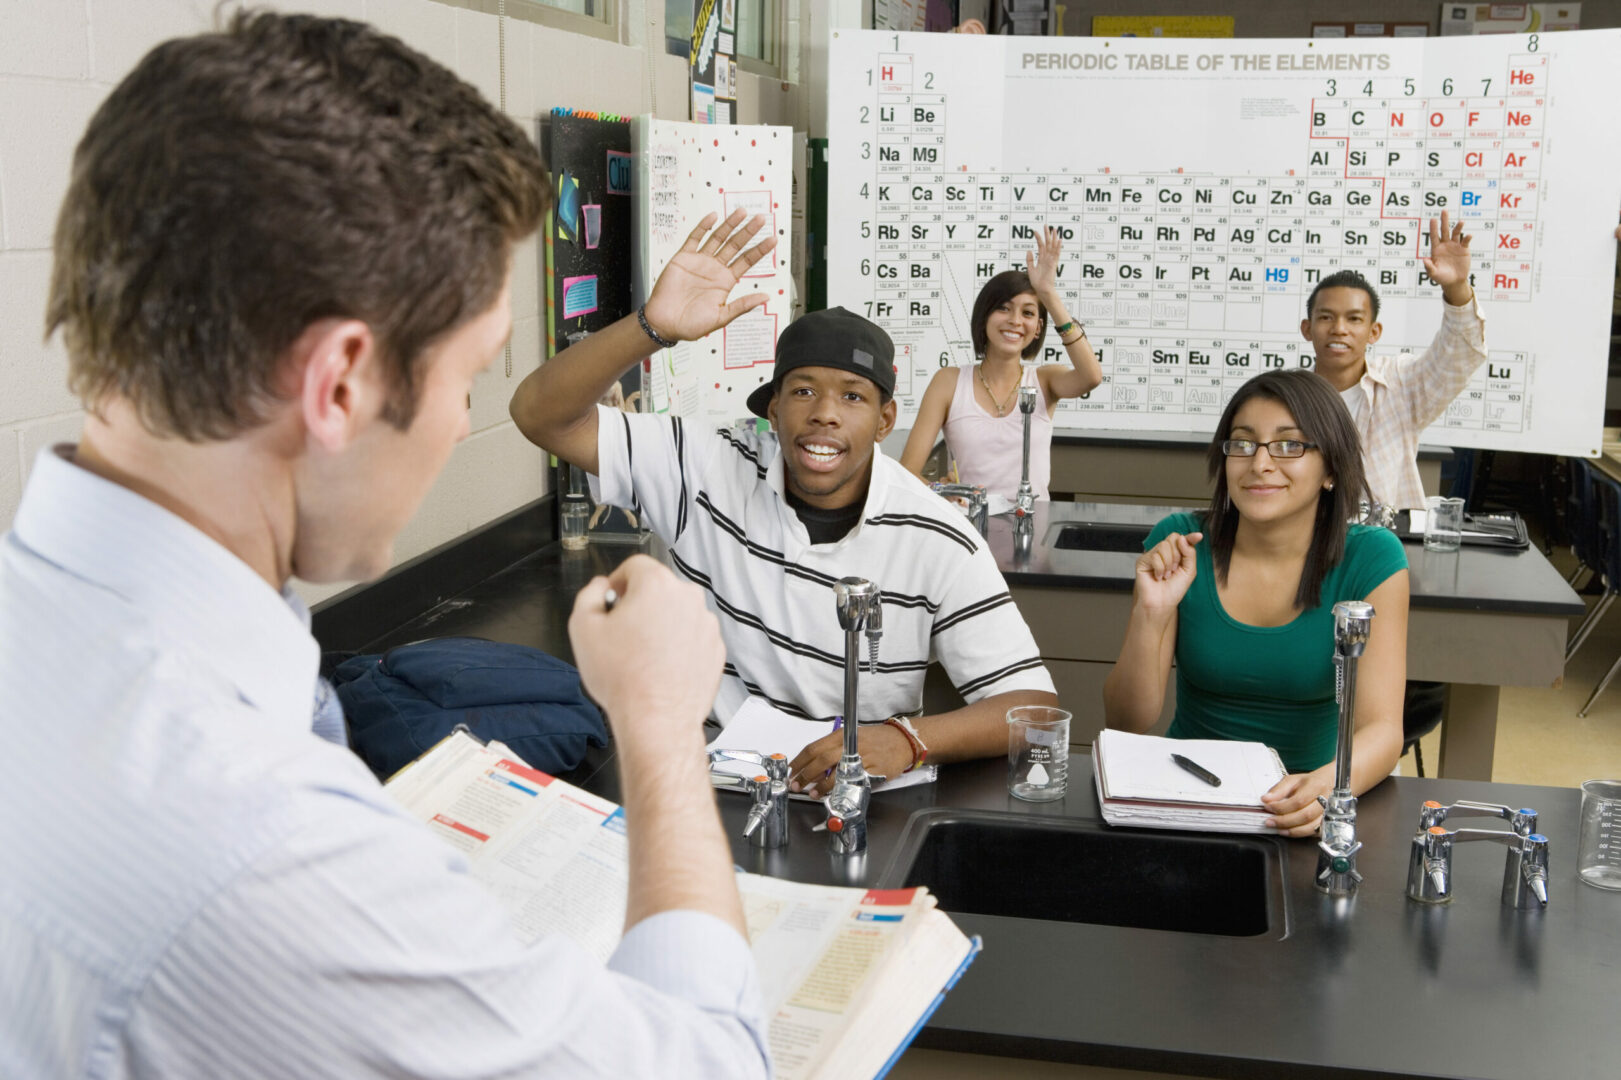 Professor asking question while student raising hand in classroom